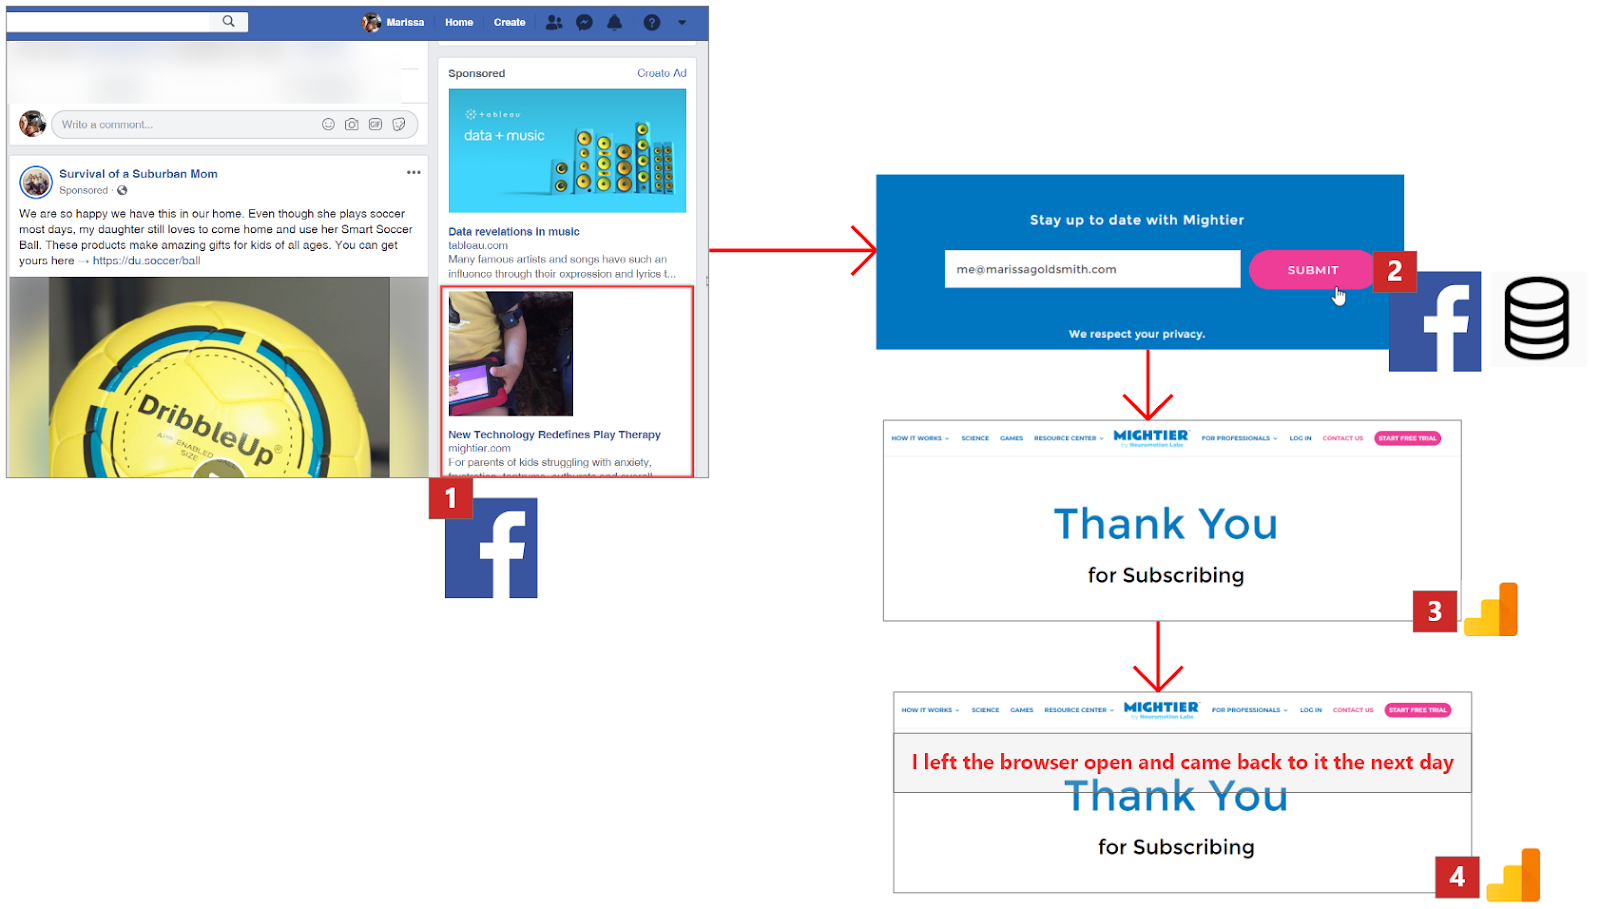 User Flow: Facebook Gets an ad impression -- I sign up and FB gets a conversion and my CRM gets my name -- Thank You page where GA gets the pageview -- I leave, come back, view the page again, and GA gets another pageview.